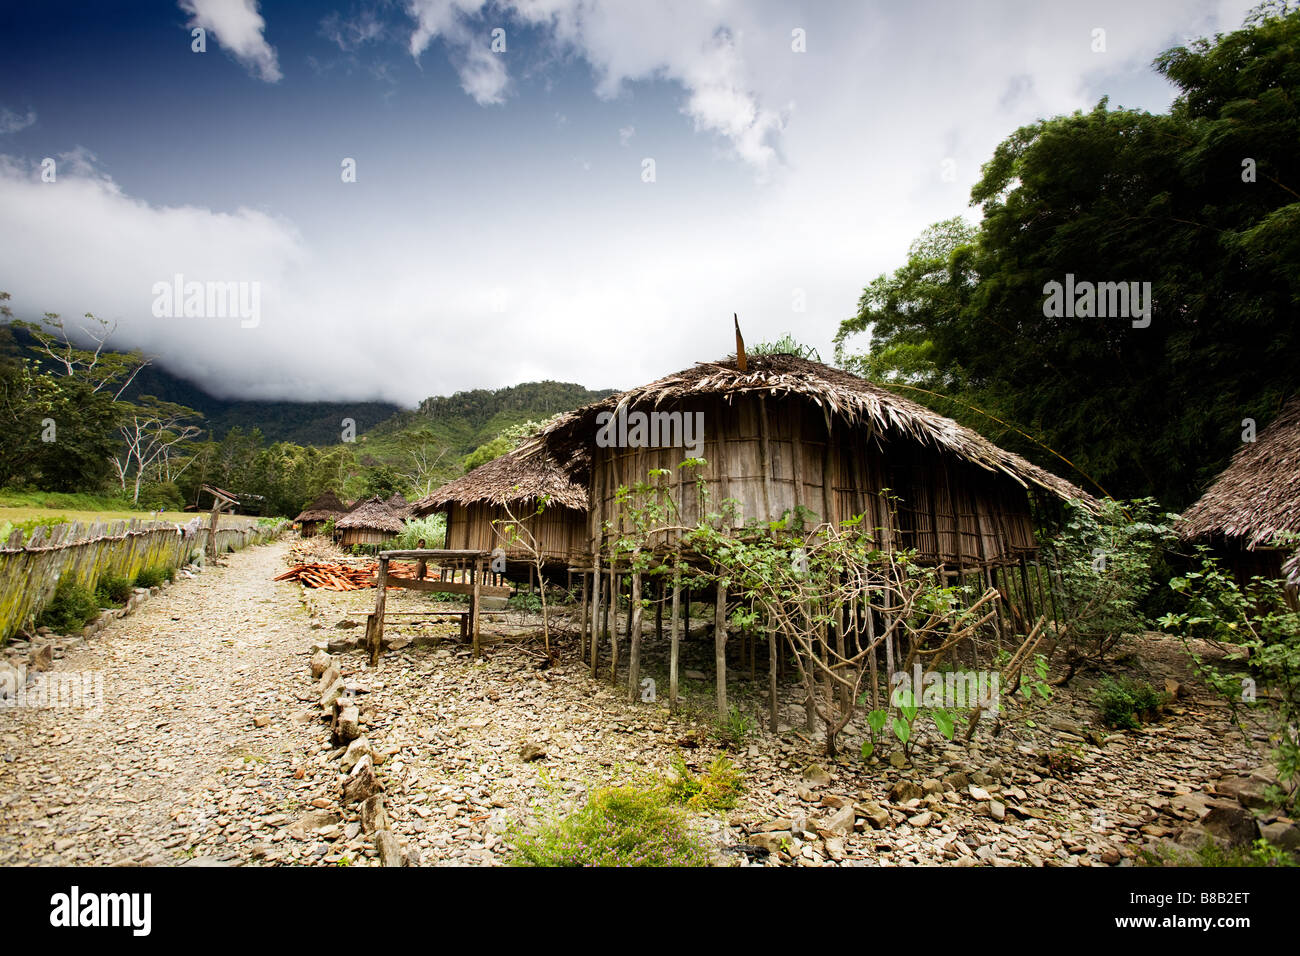 A traditional village hut in Papua Indonesia - Stock Image